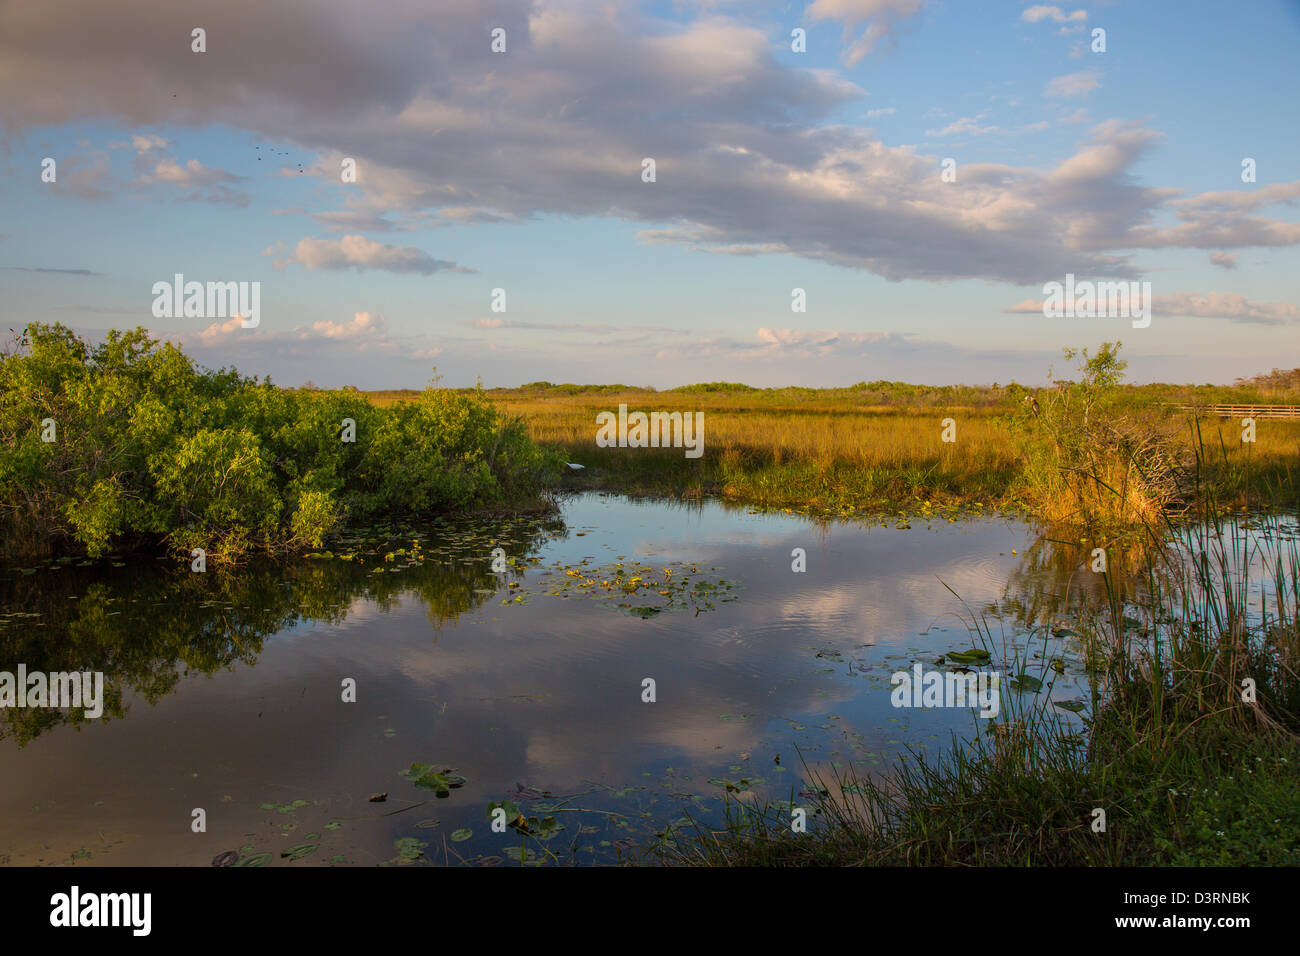 Everglades Stock Photos & Everglades Stock Images - Alamy